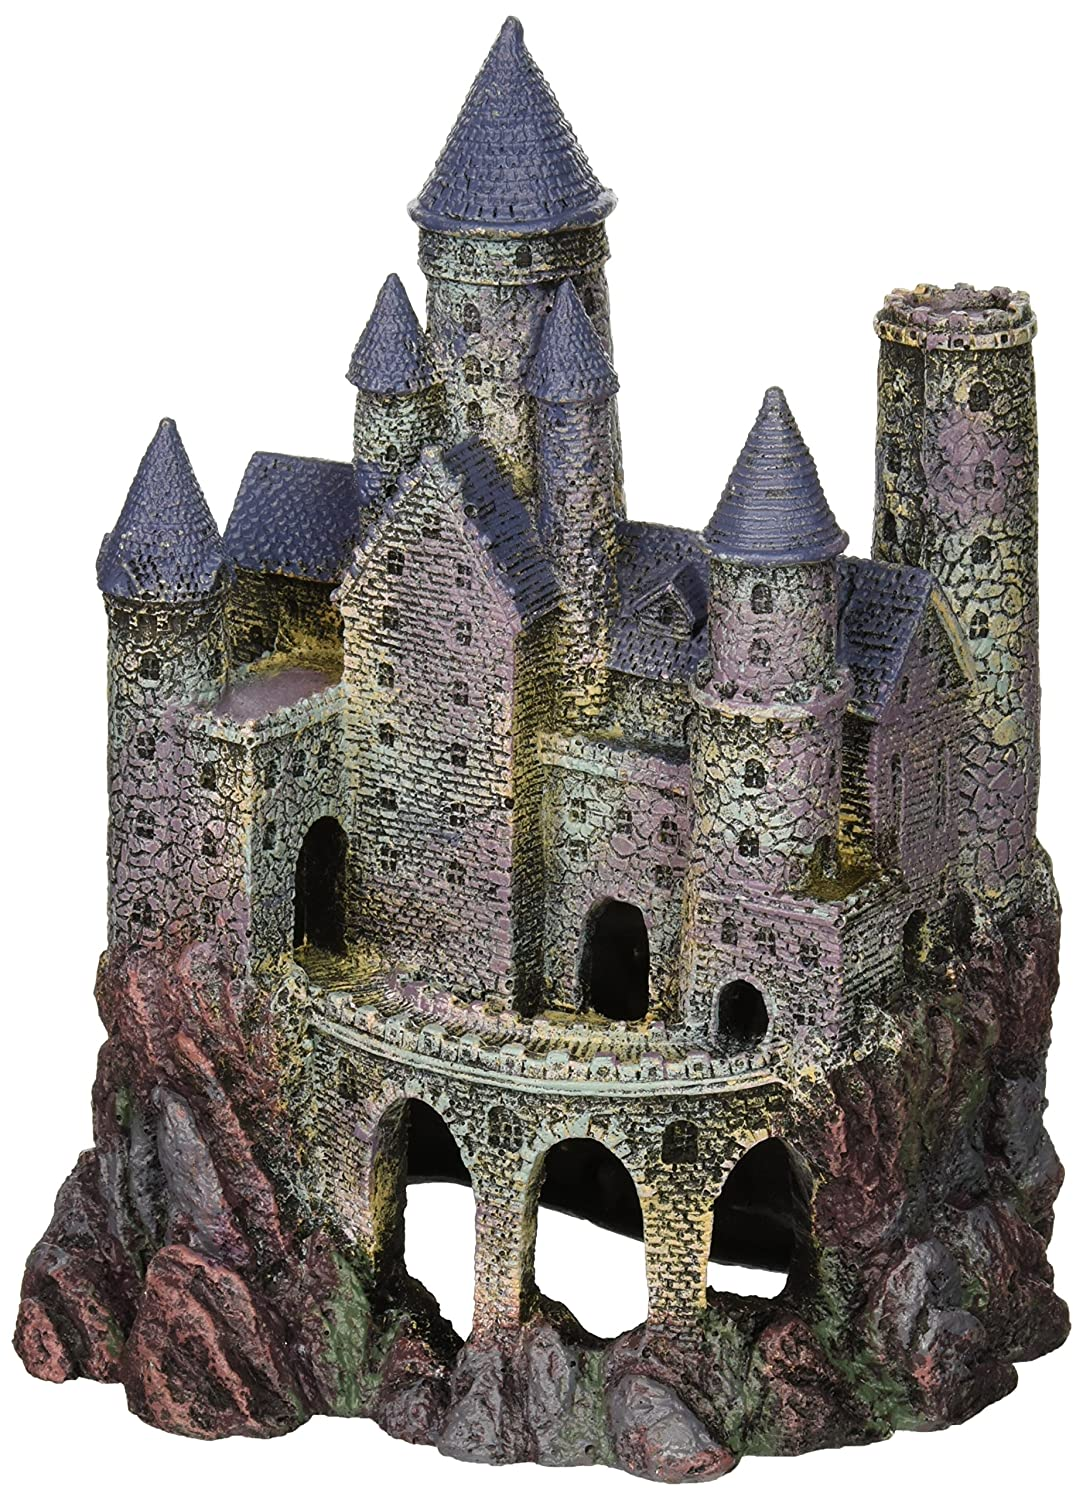 Penn Plax Mythical Magic Castles Aquarium Decoration